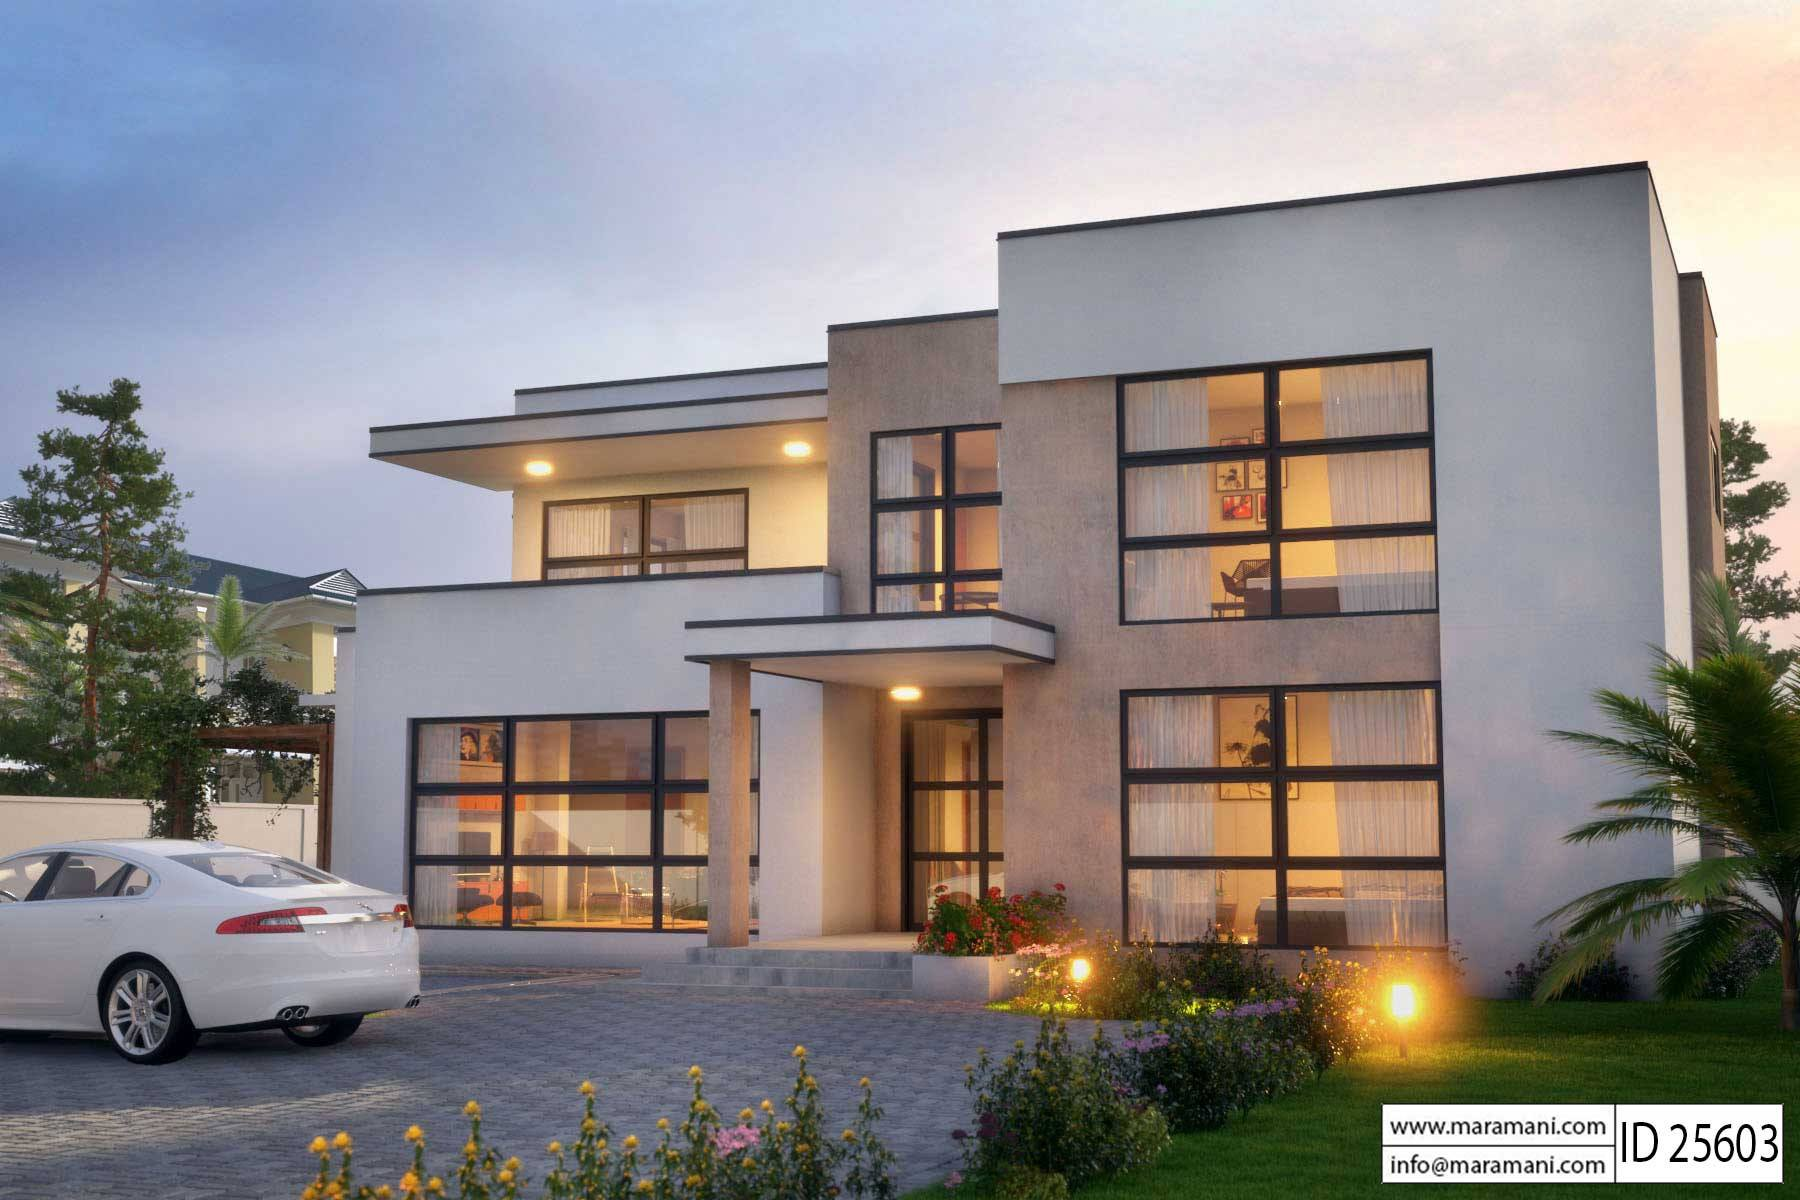 modern 5 bedroom house designs modern 5 bedroom house design id 25603 floor plans by 19211